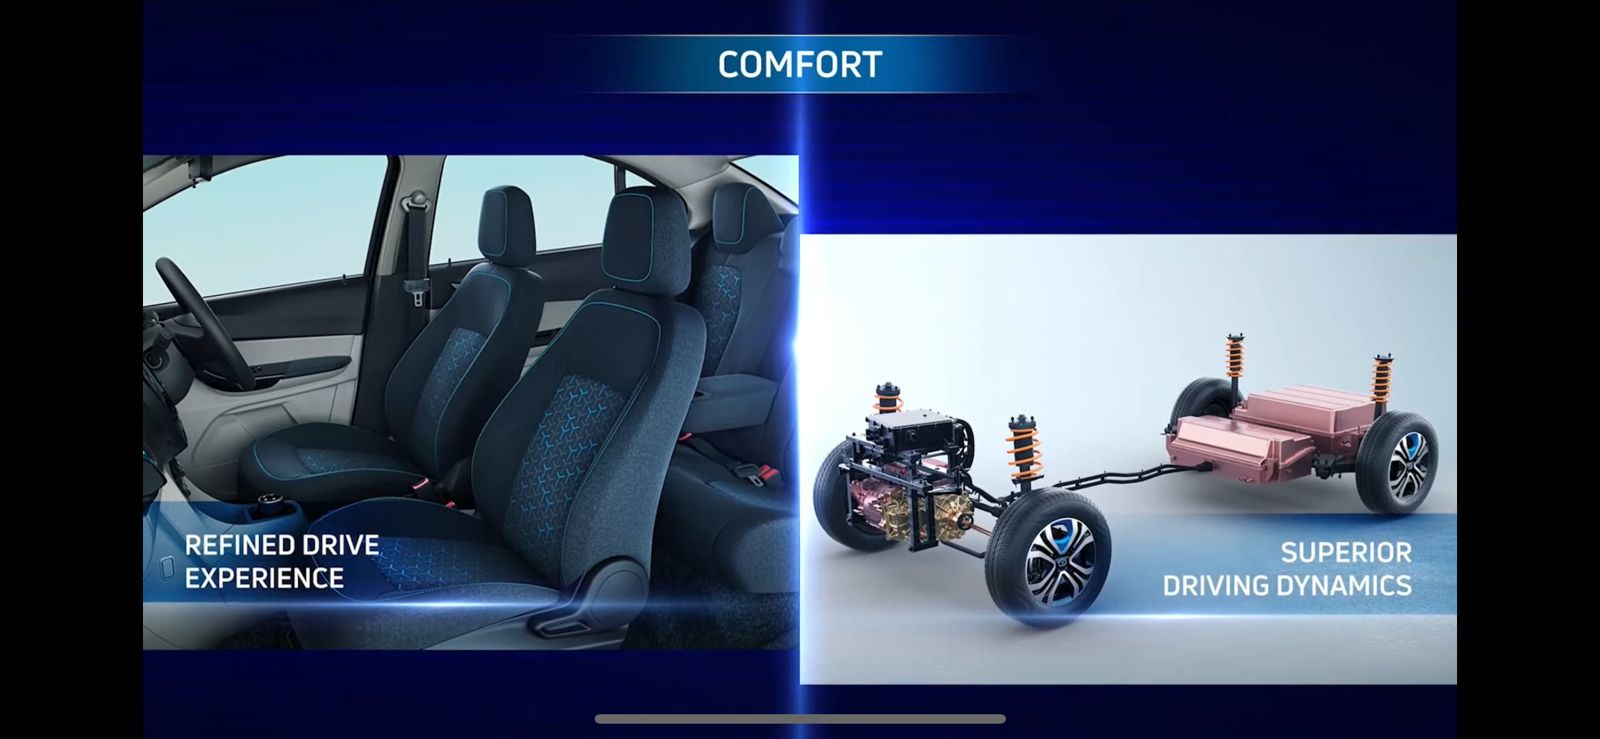 <p>The Tigor EV has a silent cabin with a claimed spacious interior. It also has a lower centre of gravity for better handling</p>